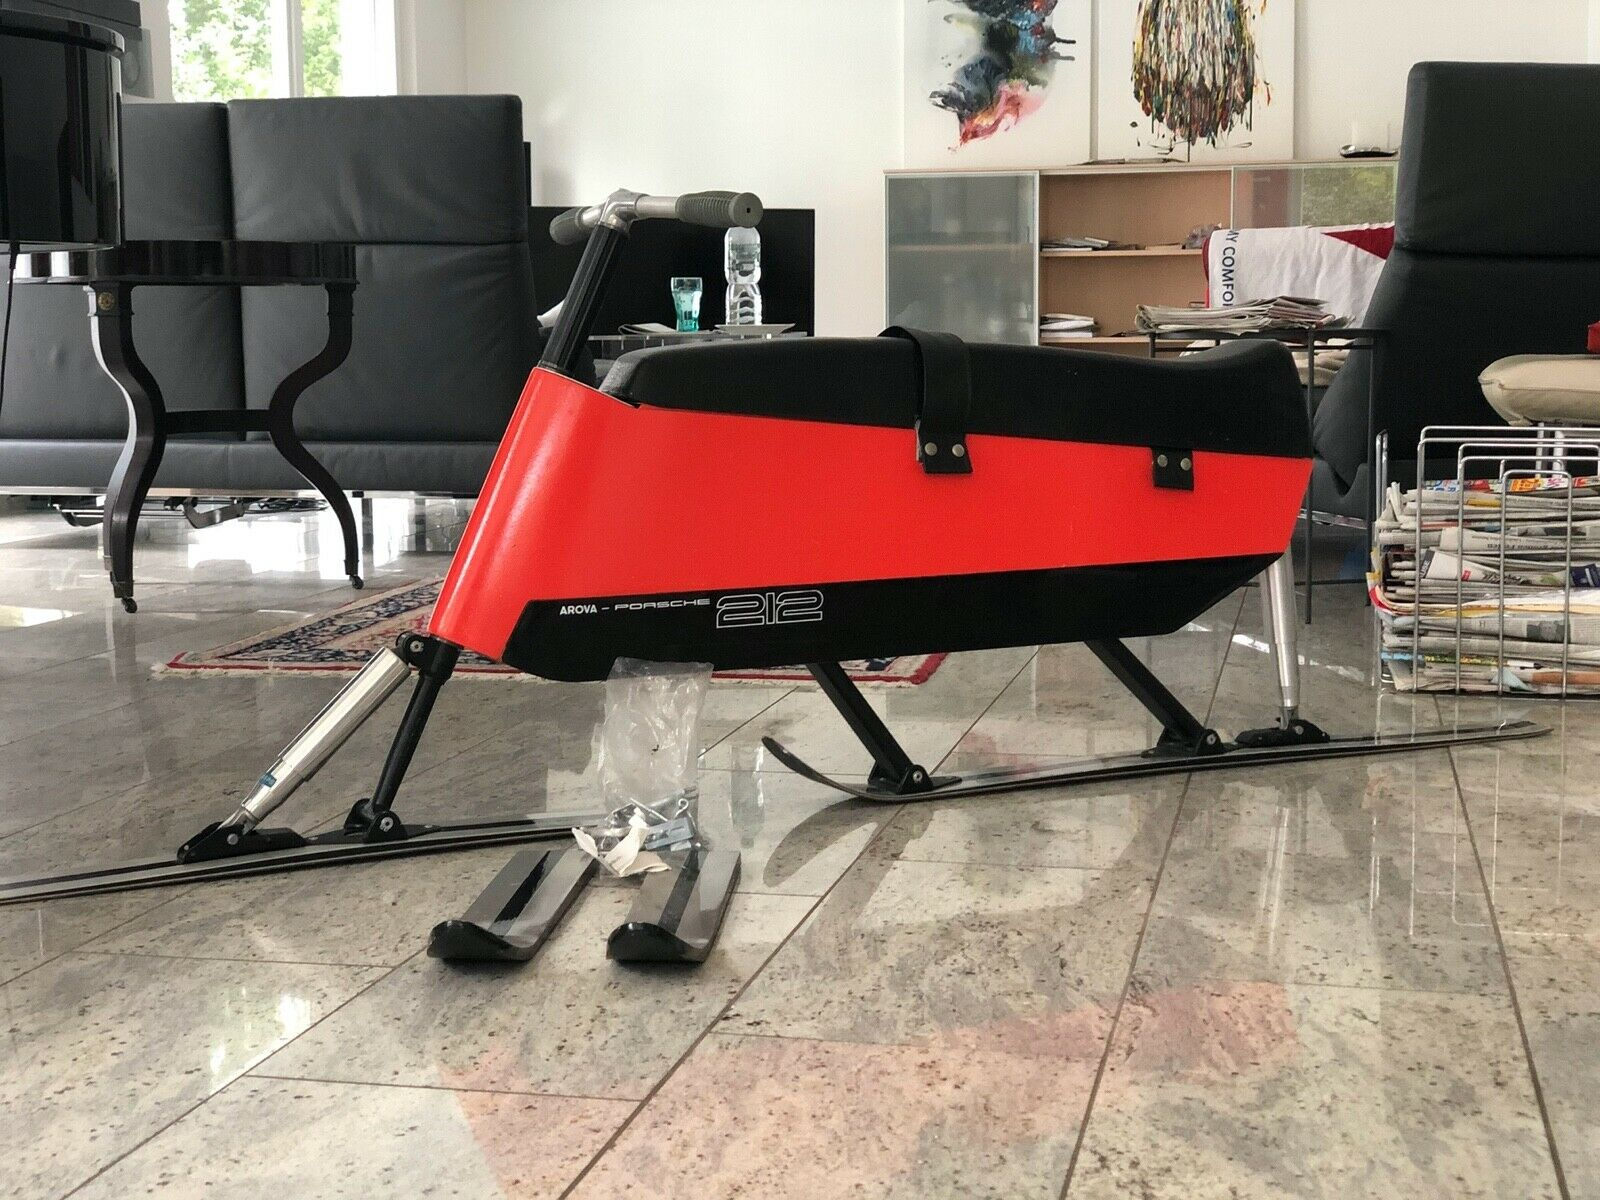 eBay Find: This Could Be The Weirdest And Most Interesting Porsche Accessory Ever Offered – Rare and Cool!